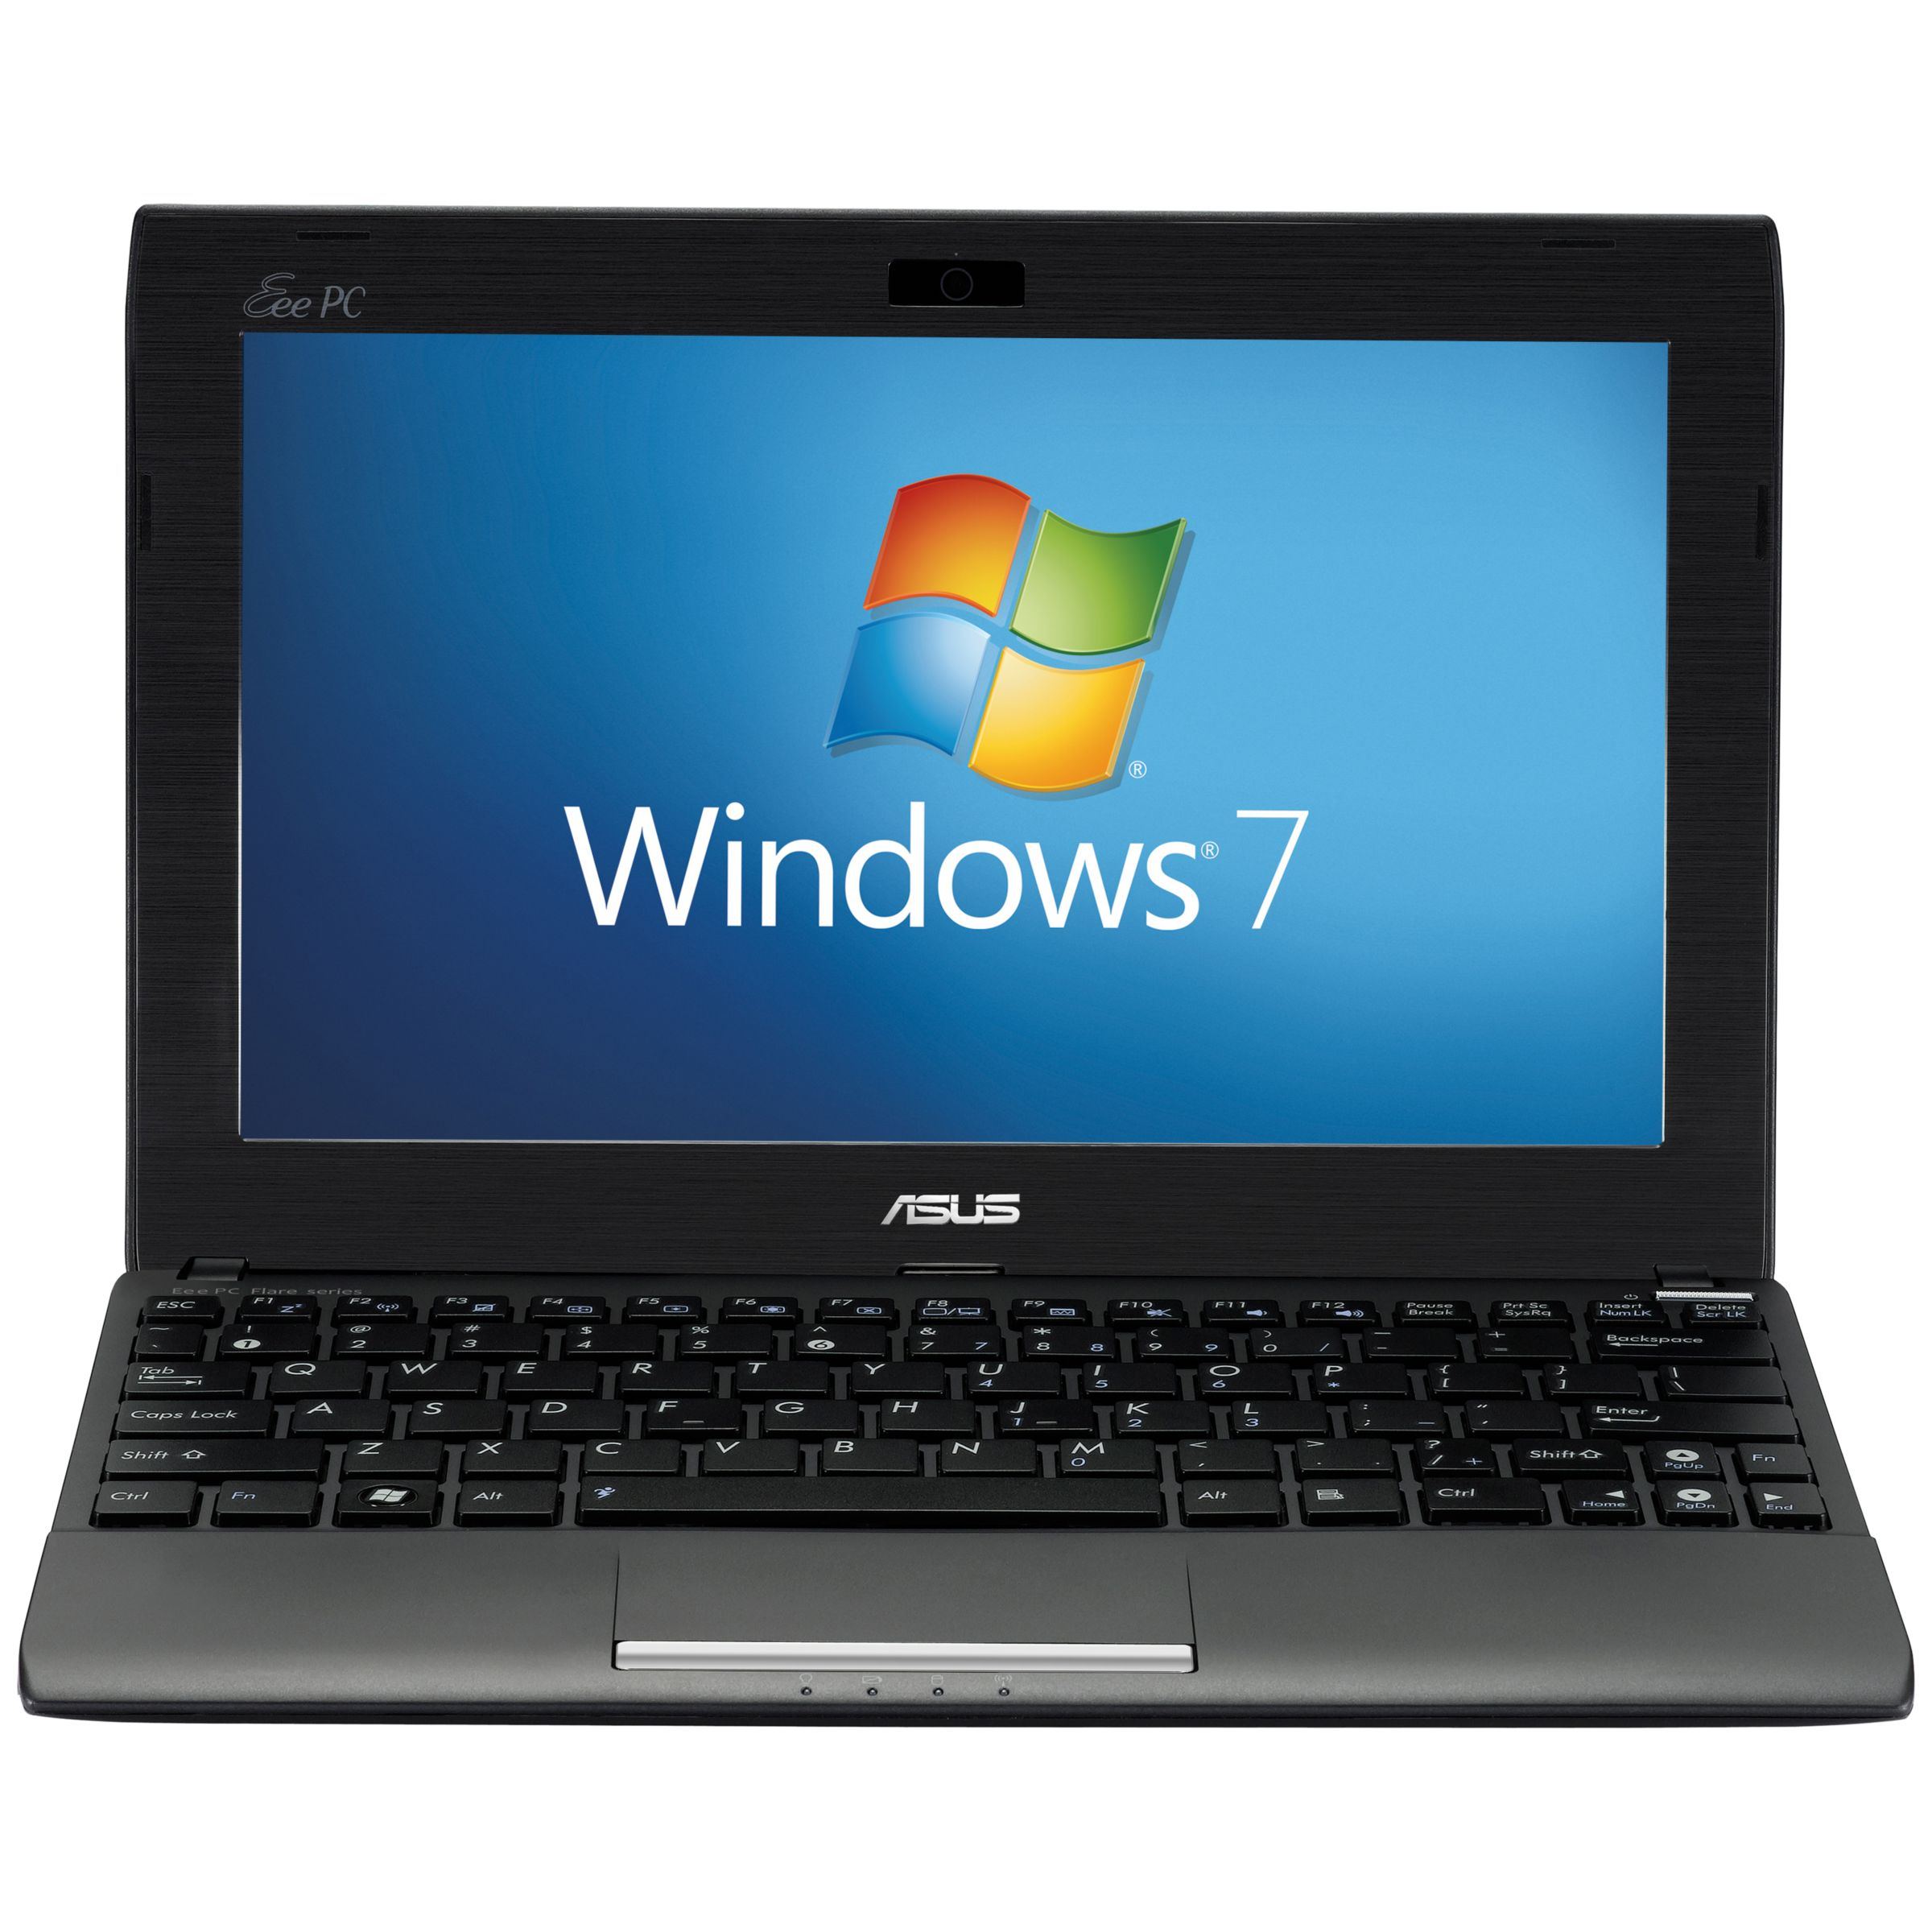 Asus 1025c Netbook, Intel Atom, 1.86ghz, 1gb Ram, 320gb, 12 Hours Battery Life, 10.1'', Grey